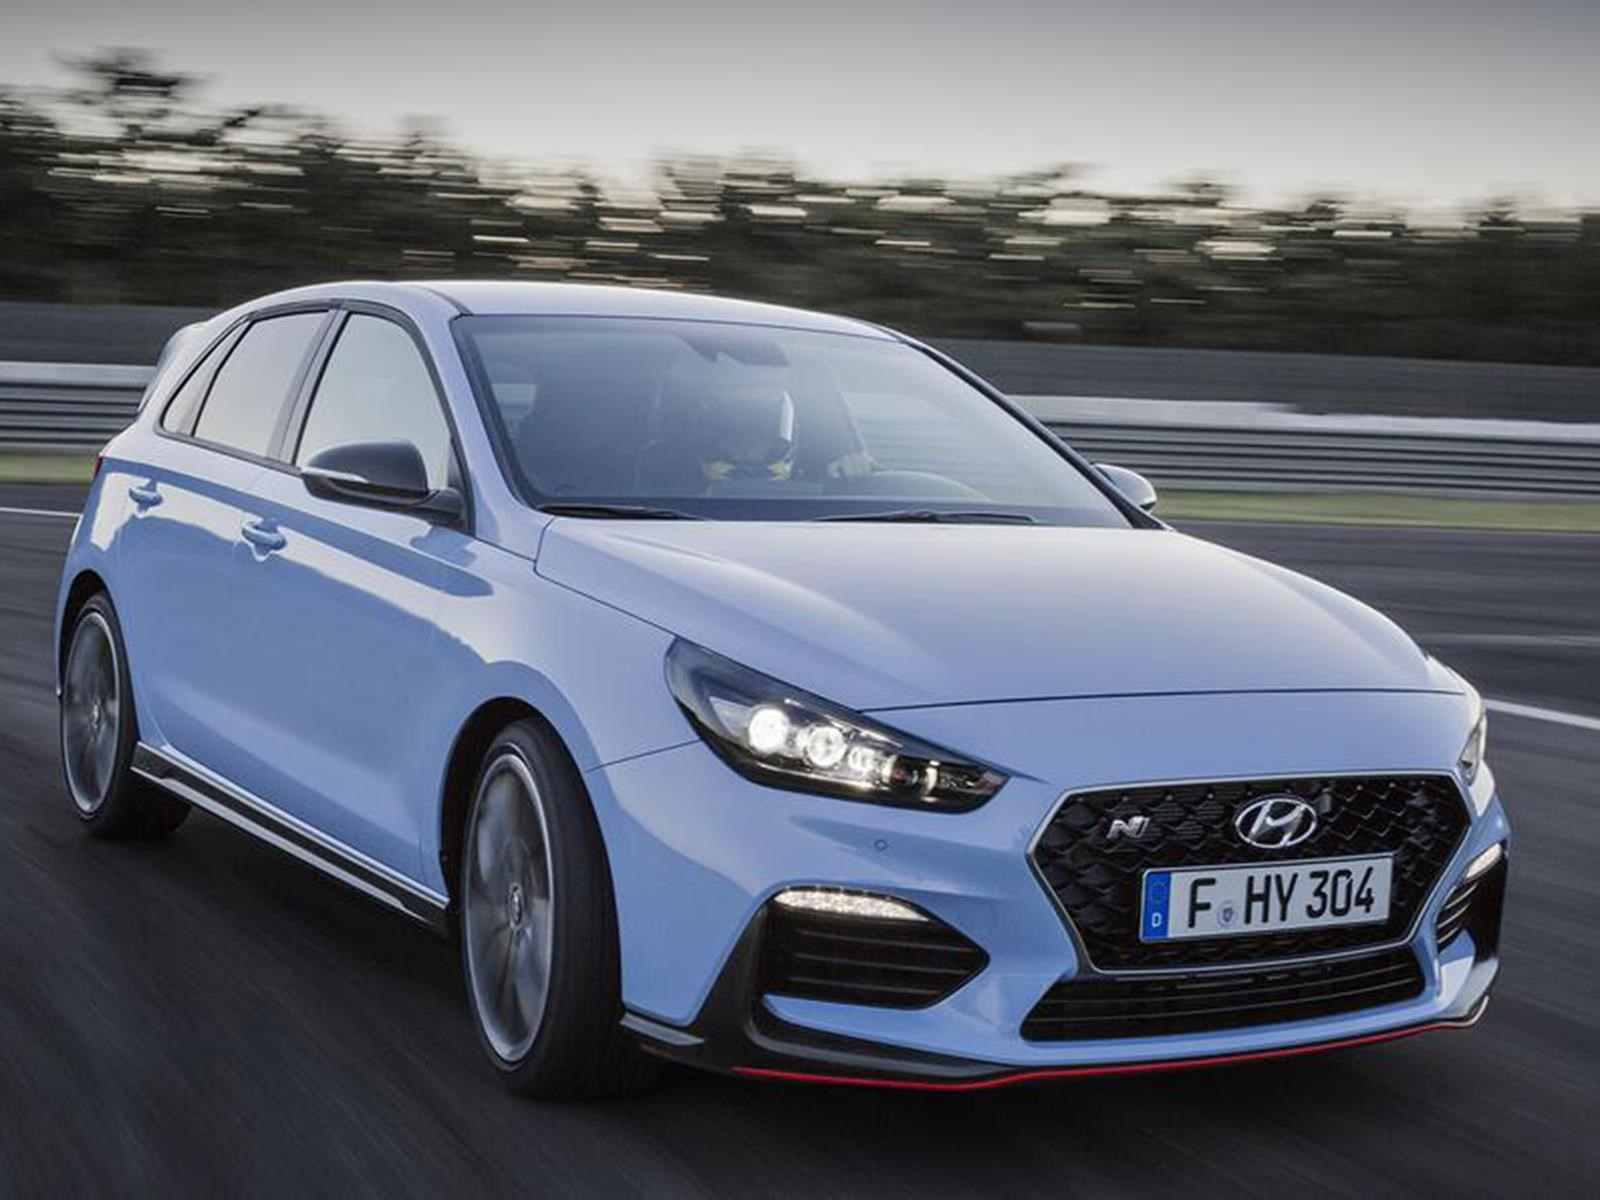 Hyundai i30 N, el hot hatch ideal para Nürburgring